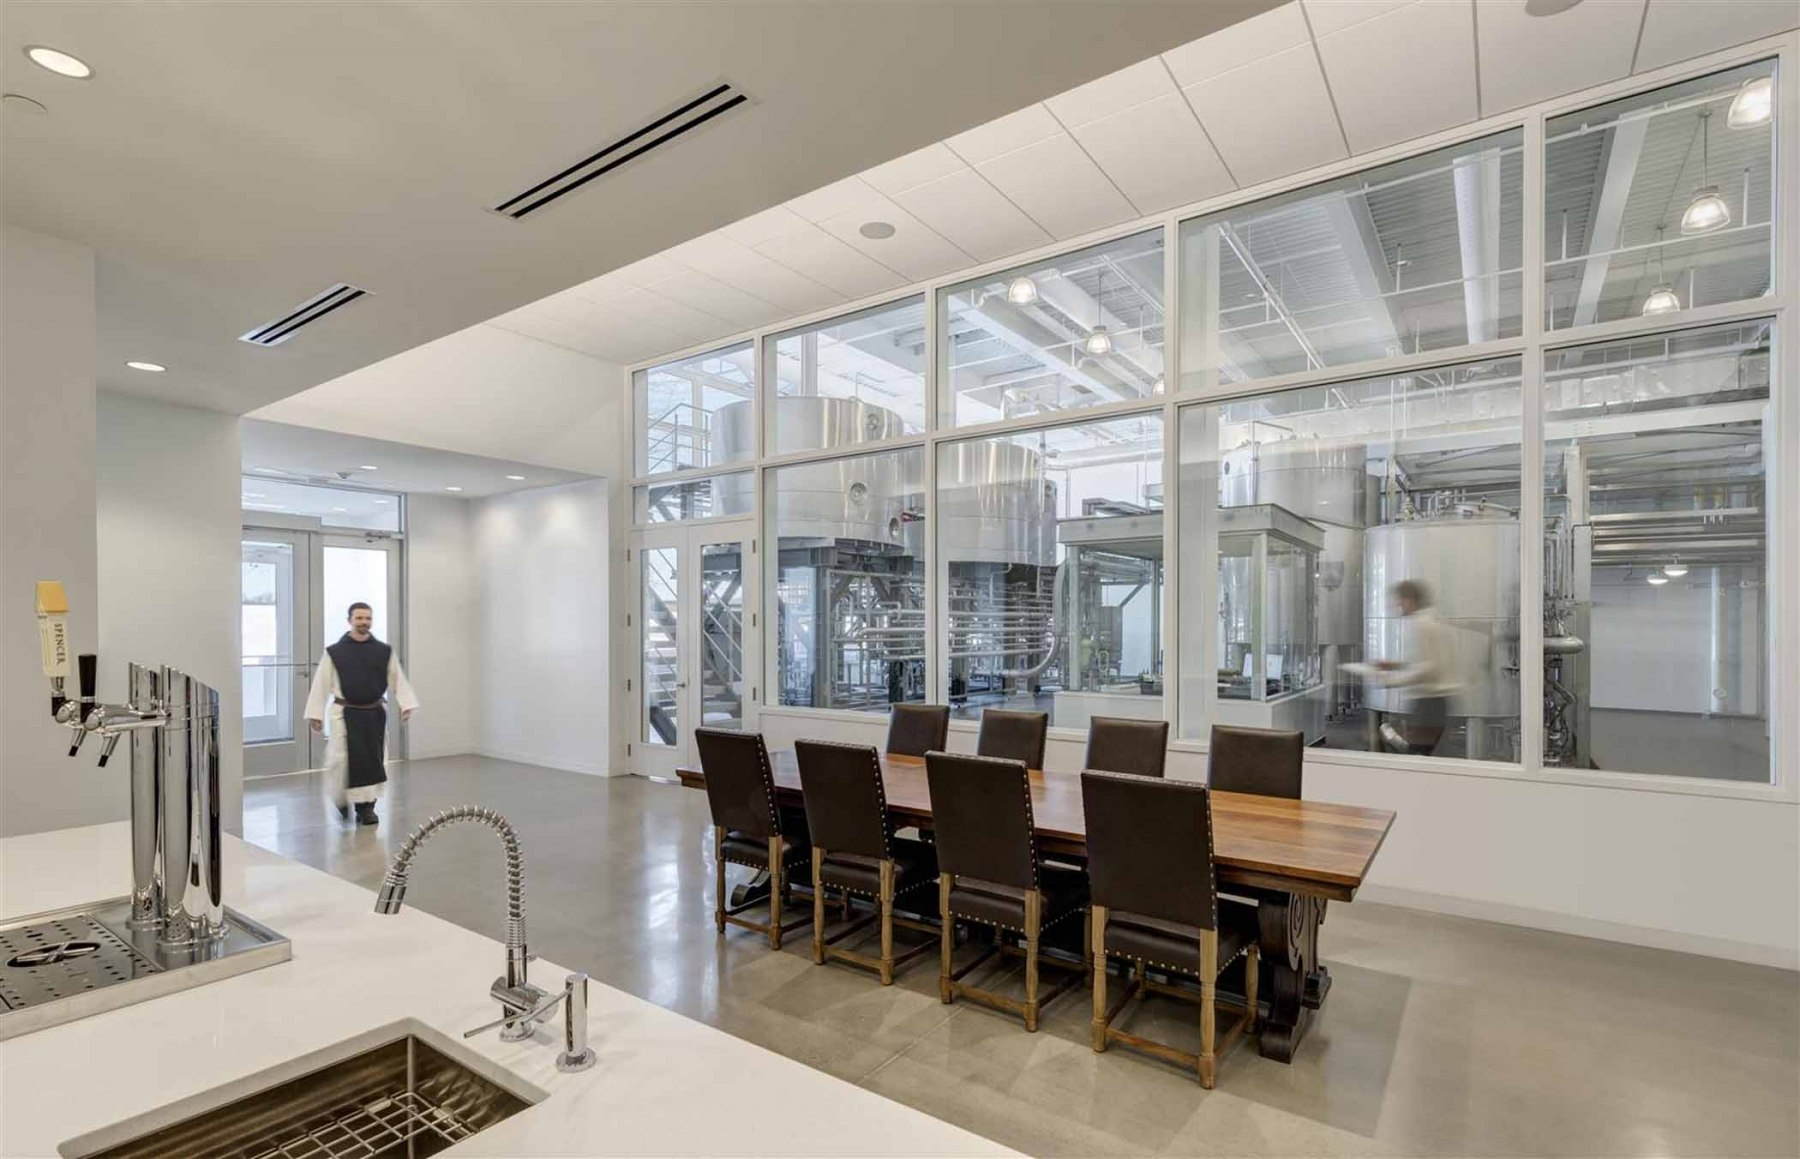 Spencer Brewery, Location: Spencer MA, Architect: LLT Architects